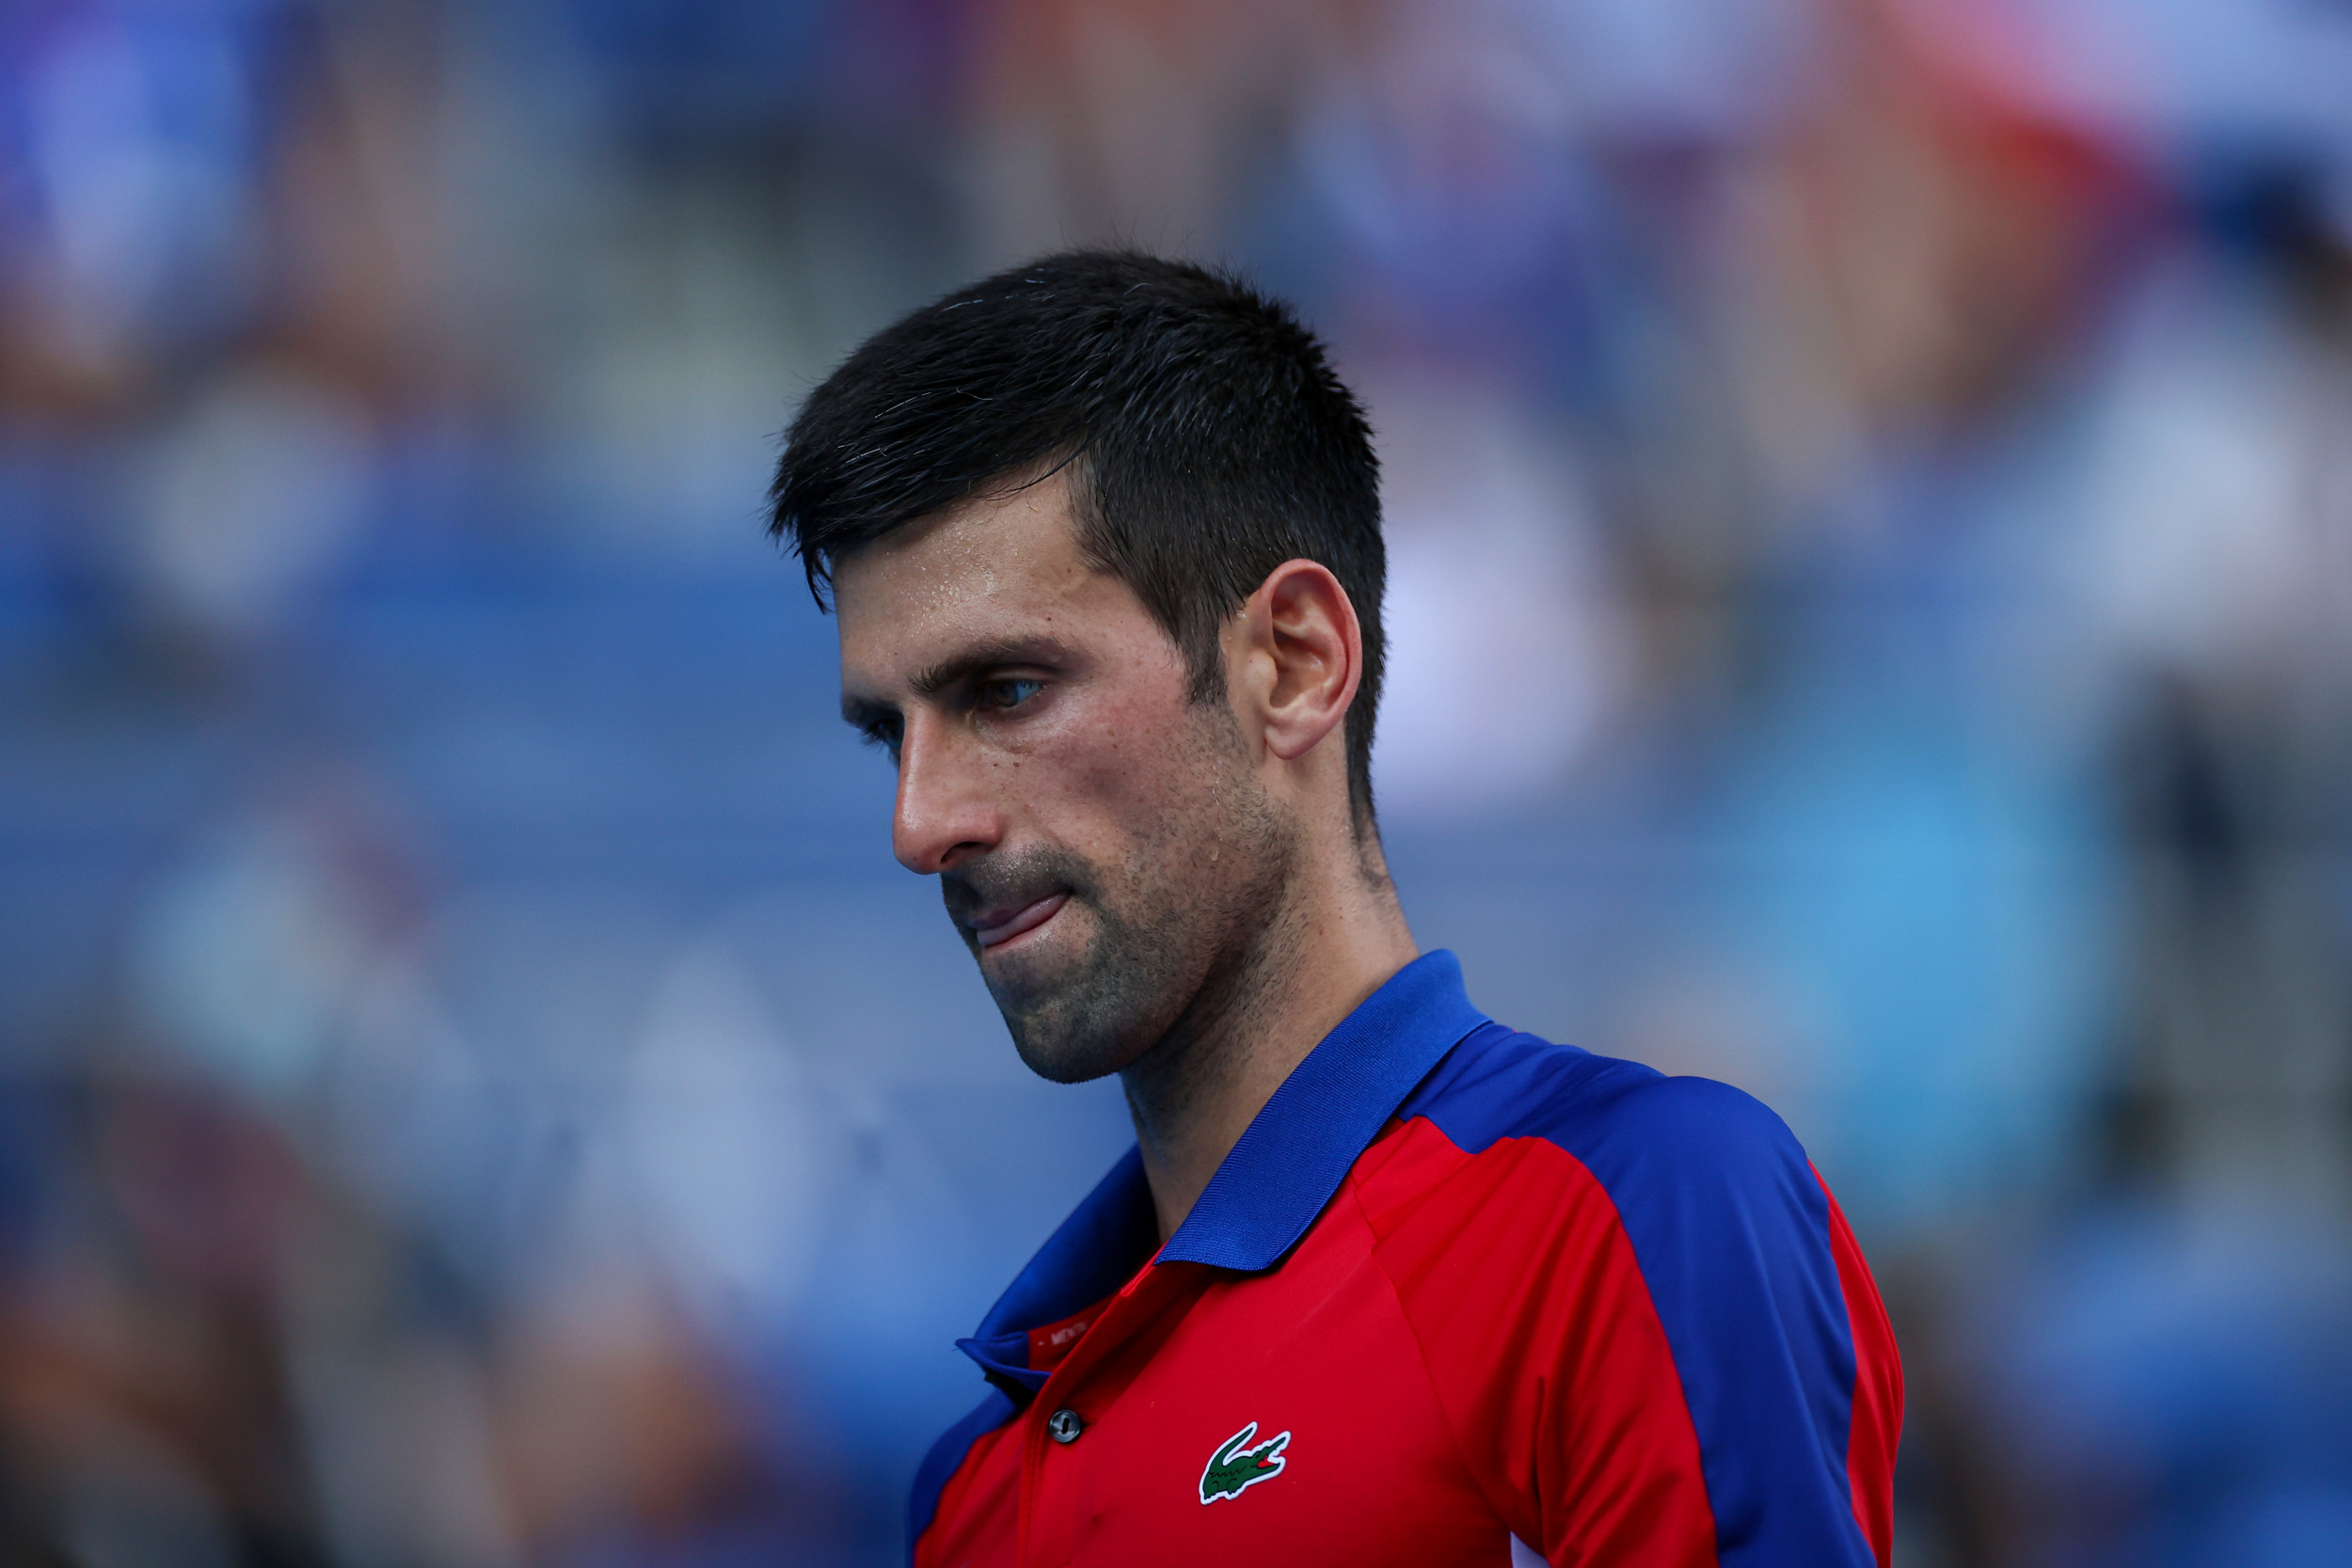 Novak Djokovic Pulls out of Doubles Match Missing Last Chance of 2020 Medal